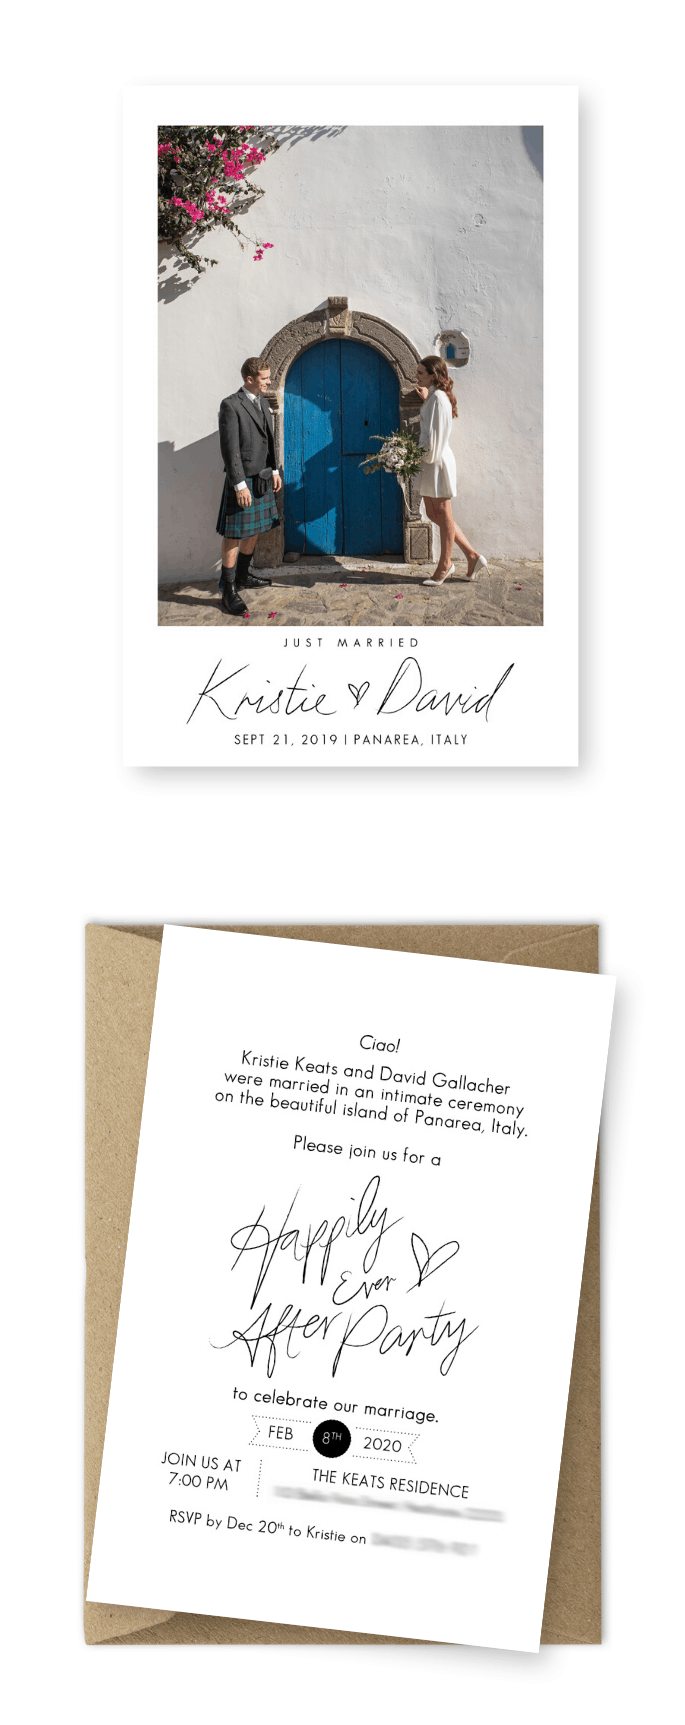 Elopement Cards Destination Wedding Invitation Photos For the Love of Stationery Karen Boscolo Photography